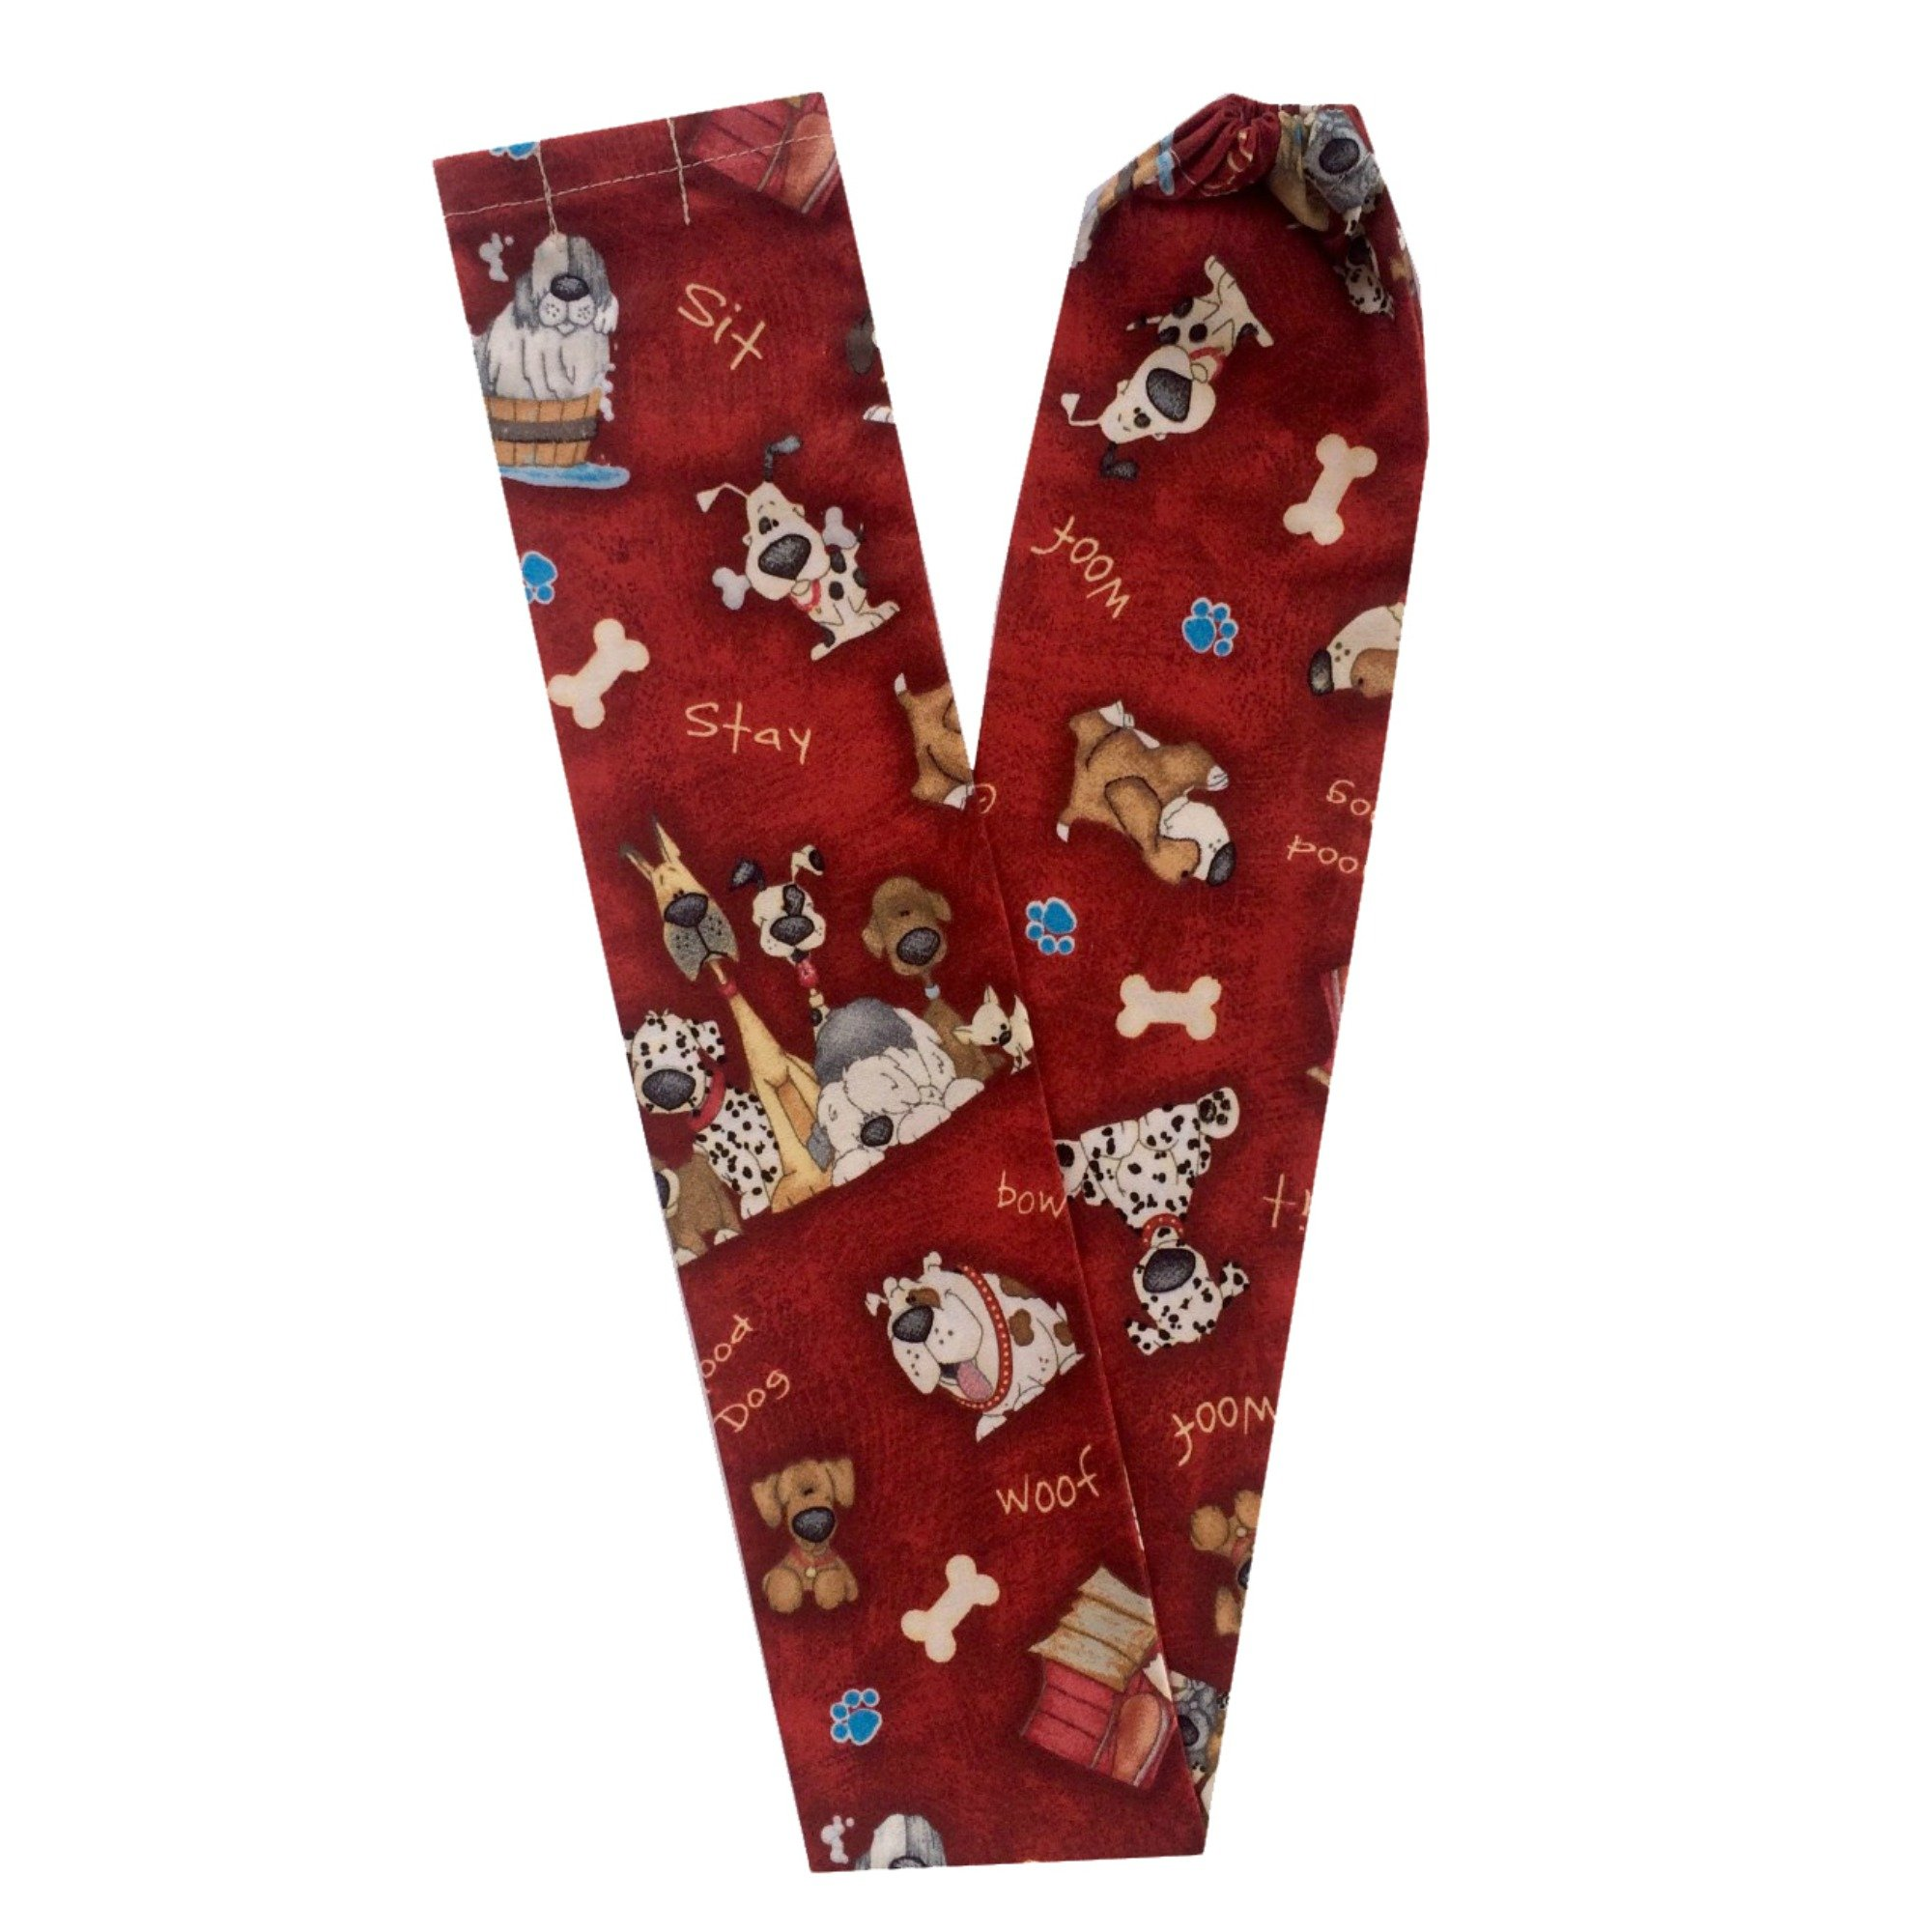 Stethoscope Covers Handmade Variety Patterns Colors 100% Cotton Scrunchie (Dogs and Bones)